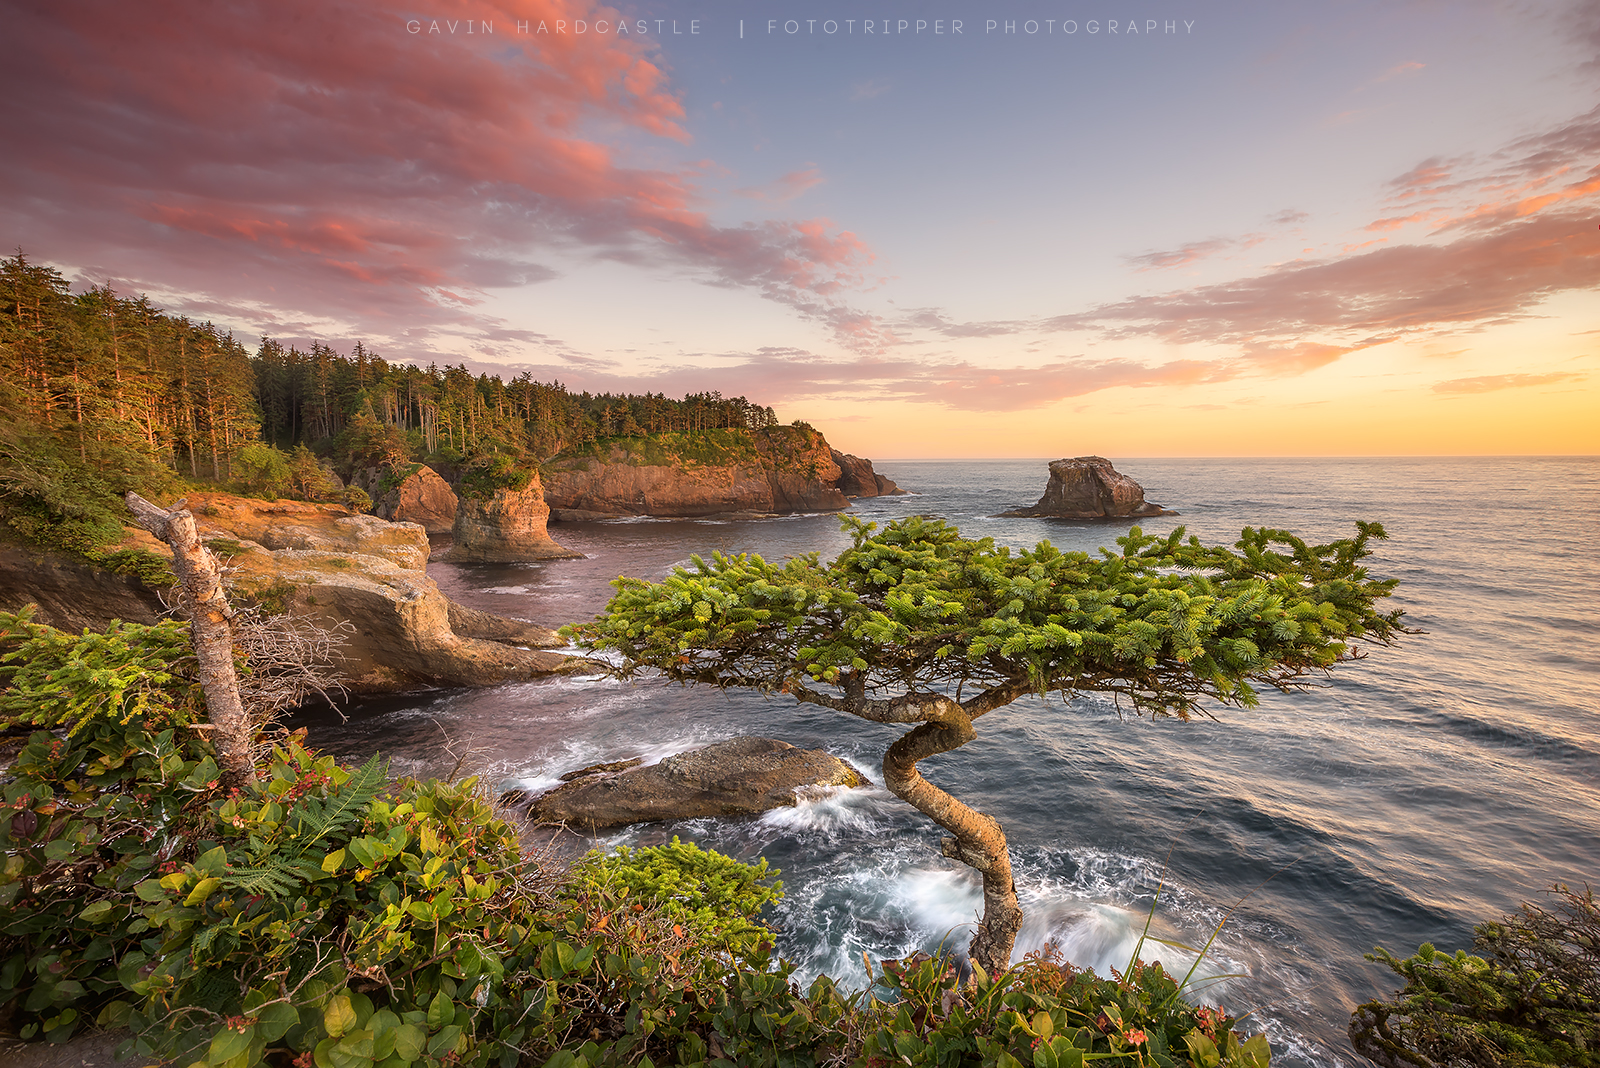 Cape Flattery Photo Tips